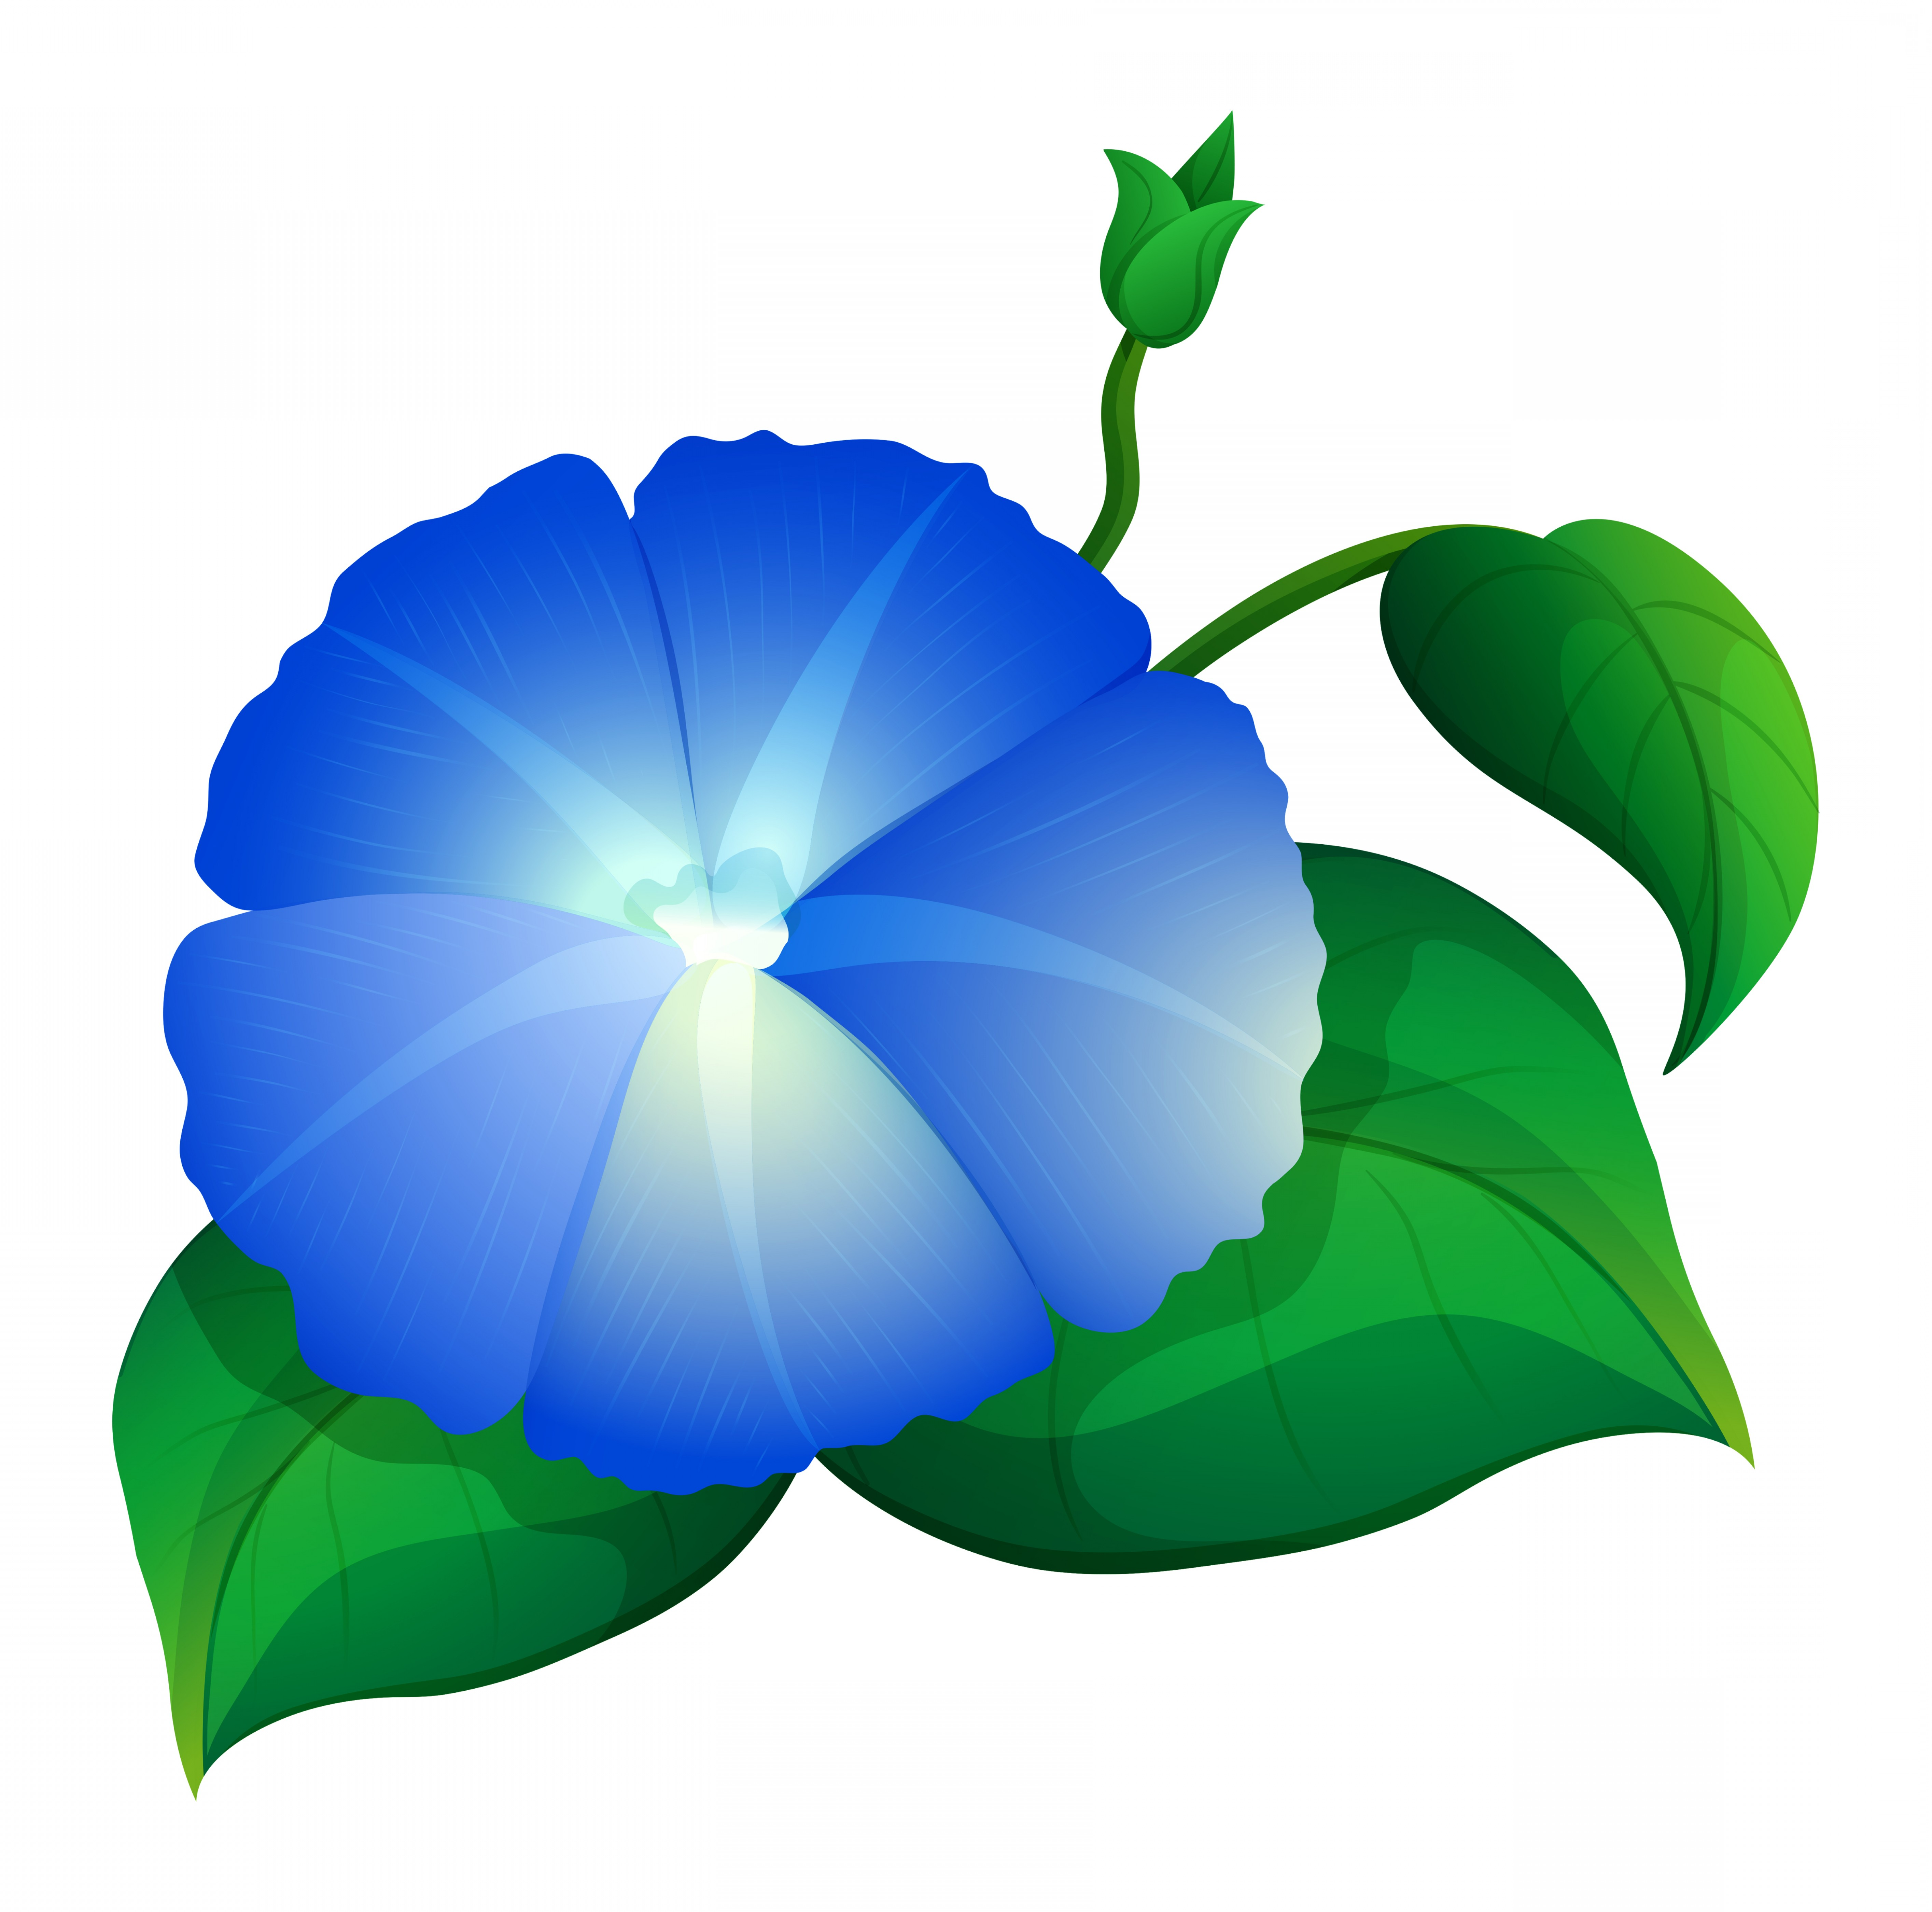 Morning Glory Transparent Vector: Blue Morning Glory Flower With Green Leaves